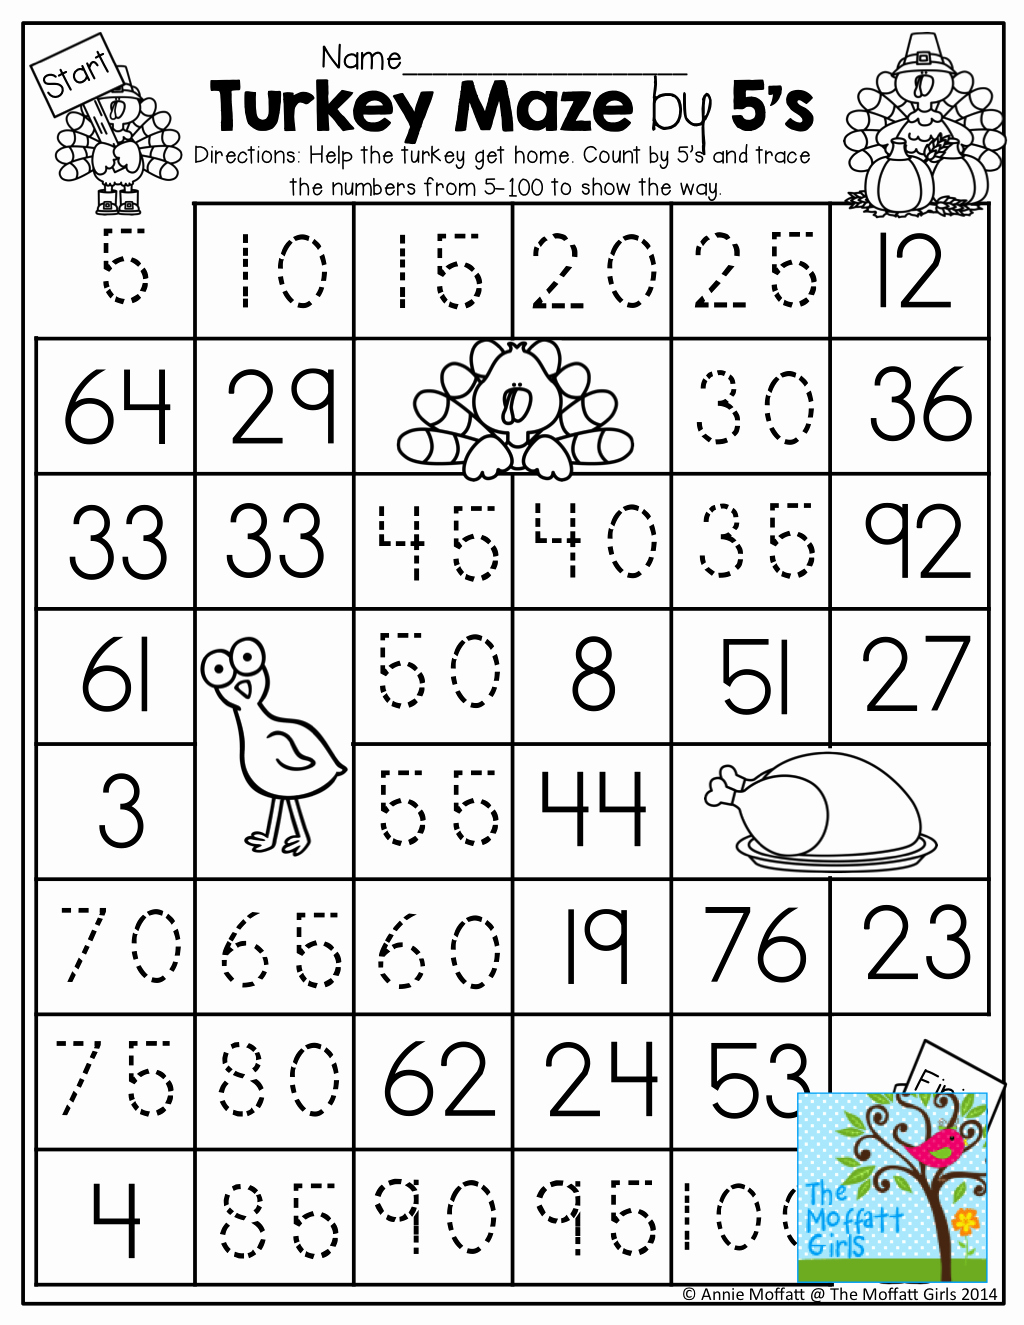 Counting In 5s Worksheet Luxury Count by 5 S Worksheet by Tracing the Path From the Turkey